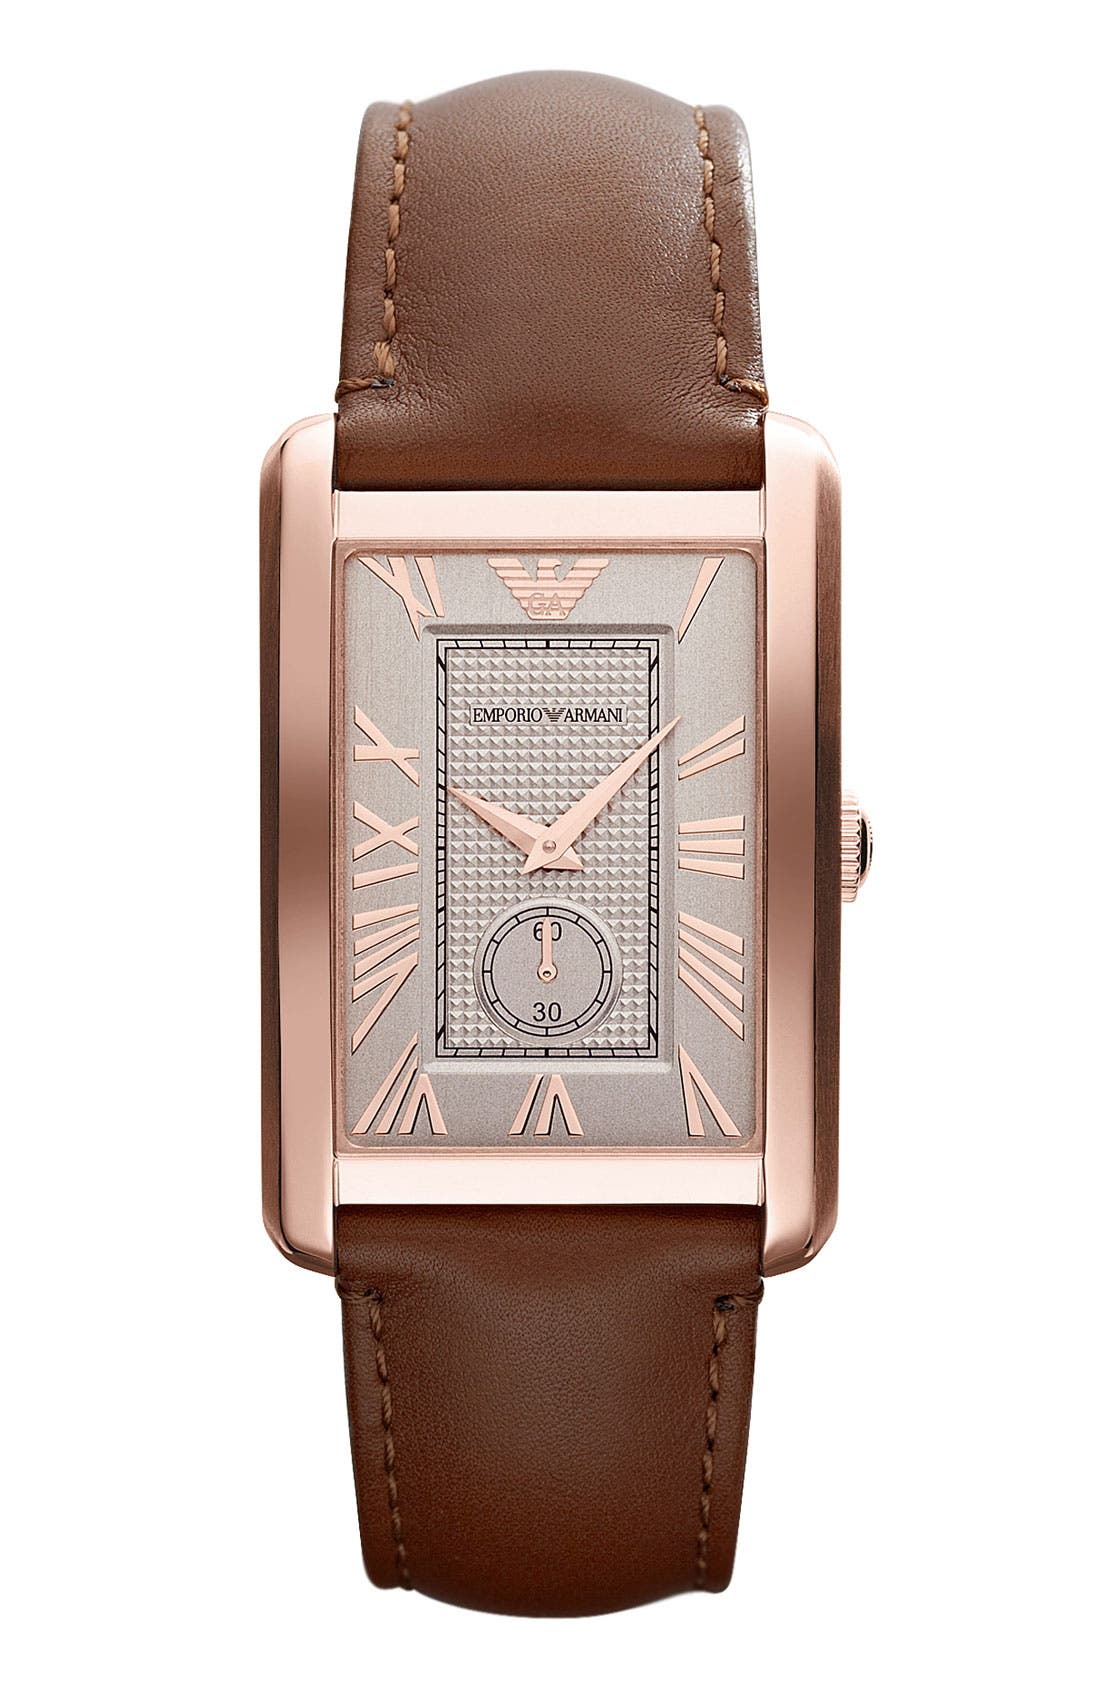 Main Image - Emporio Armani Rectangular Leather Strap Watch, 31mm x 39mm